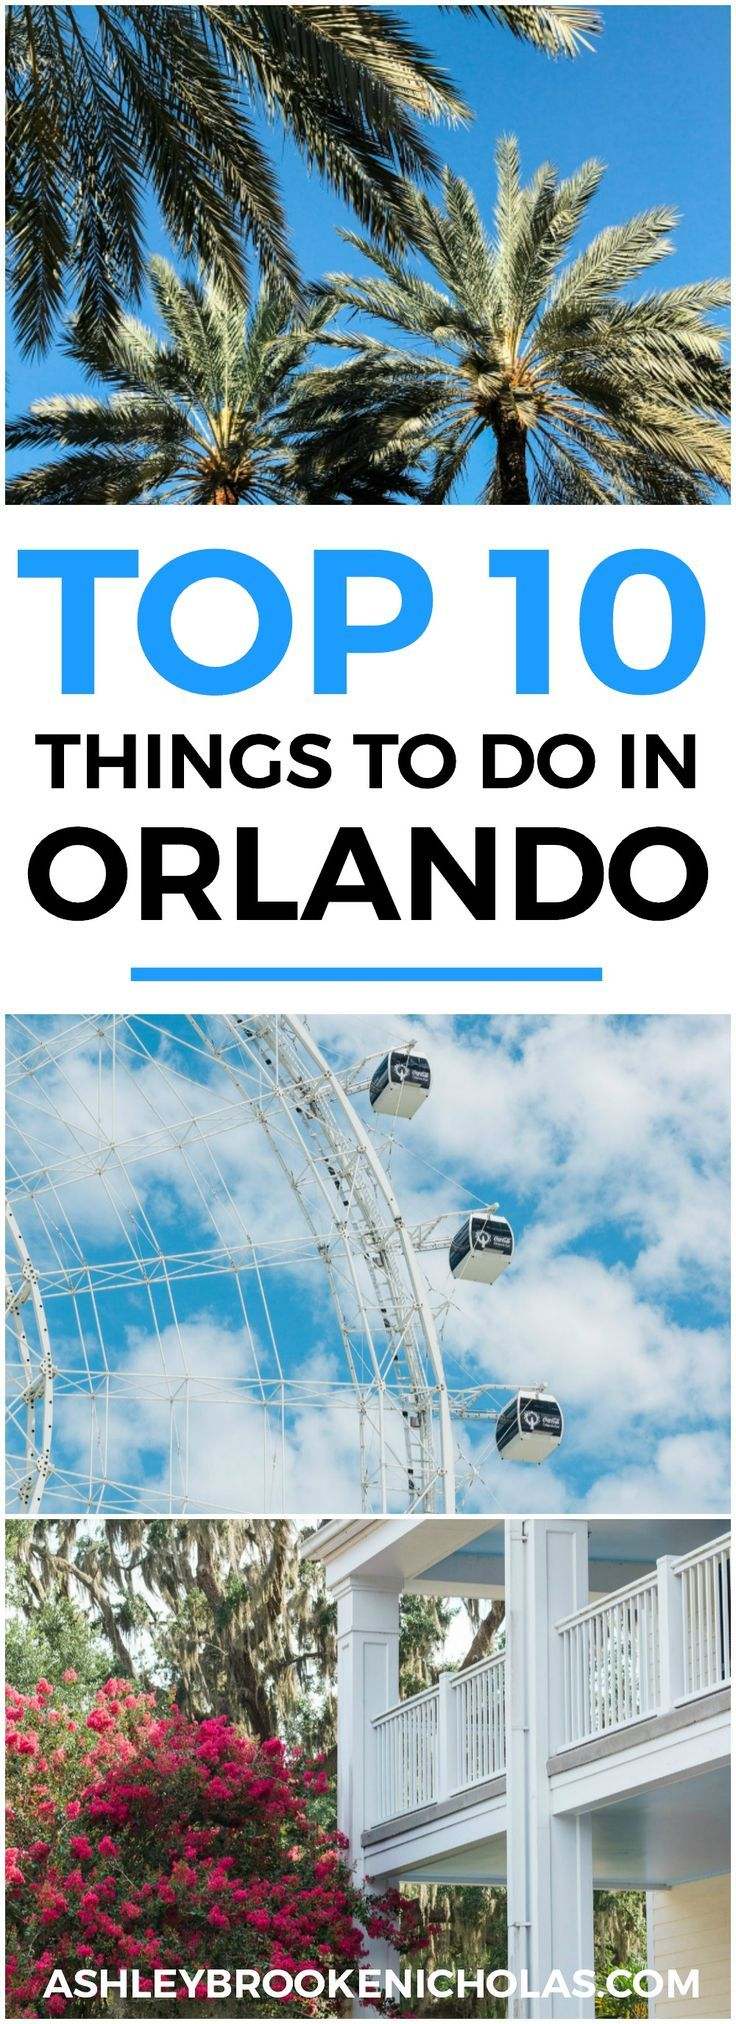 Planning a trip to Orlando? I've rounded up the top 10 things to do in Orlando, Florida, that are guaranteed to make your trip a success. Whether you're moving to Orlando or just headed in on vacation, you will LOVE this list of fun activities in Orlando by Florida travel blogger Ashley Brooke Nicholas #CORTatHome sponsored by   @cortfurniture   affordable travel tips, orlando vacation tips, vacation tips, orlando eye, leu gardens, universal studios, islands of adventure, disney, disney…